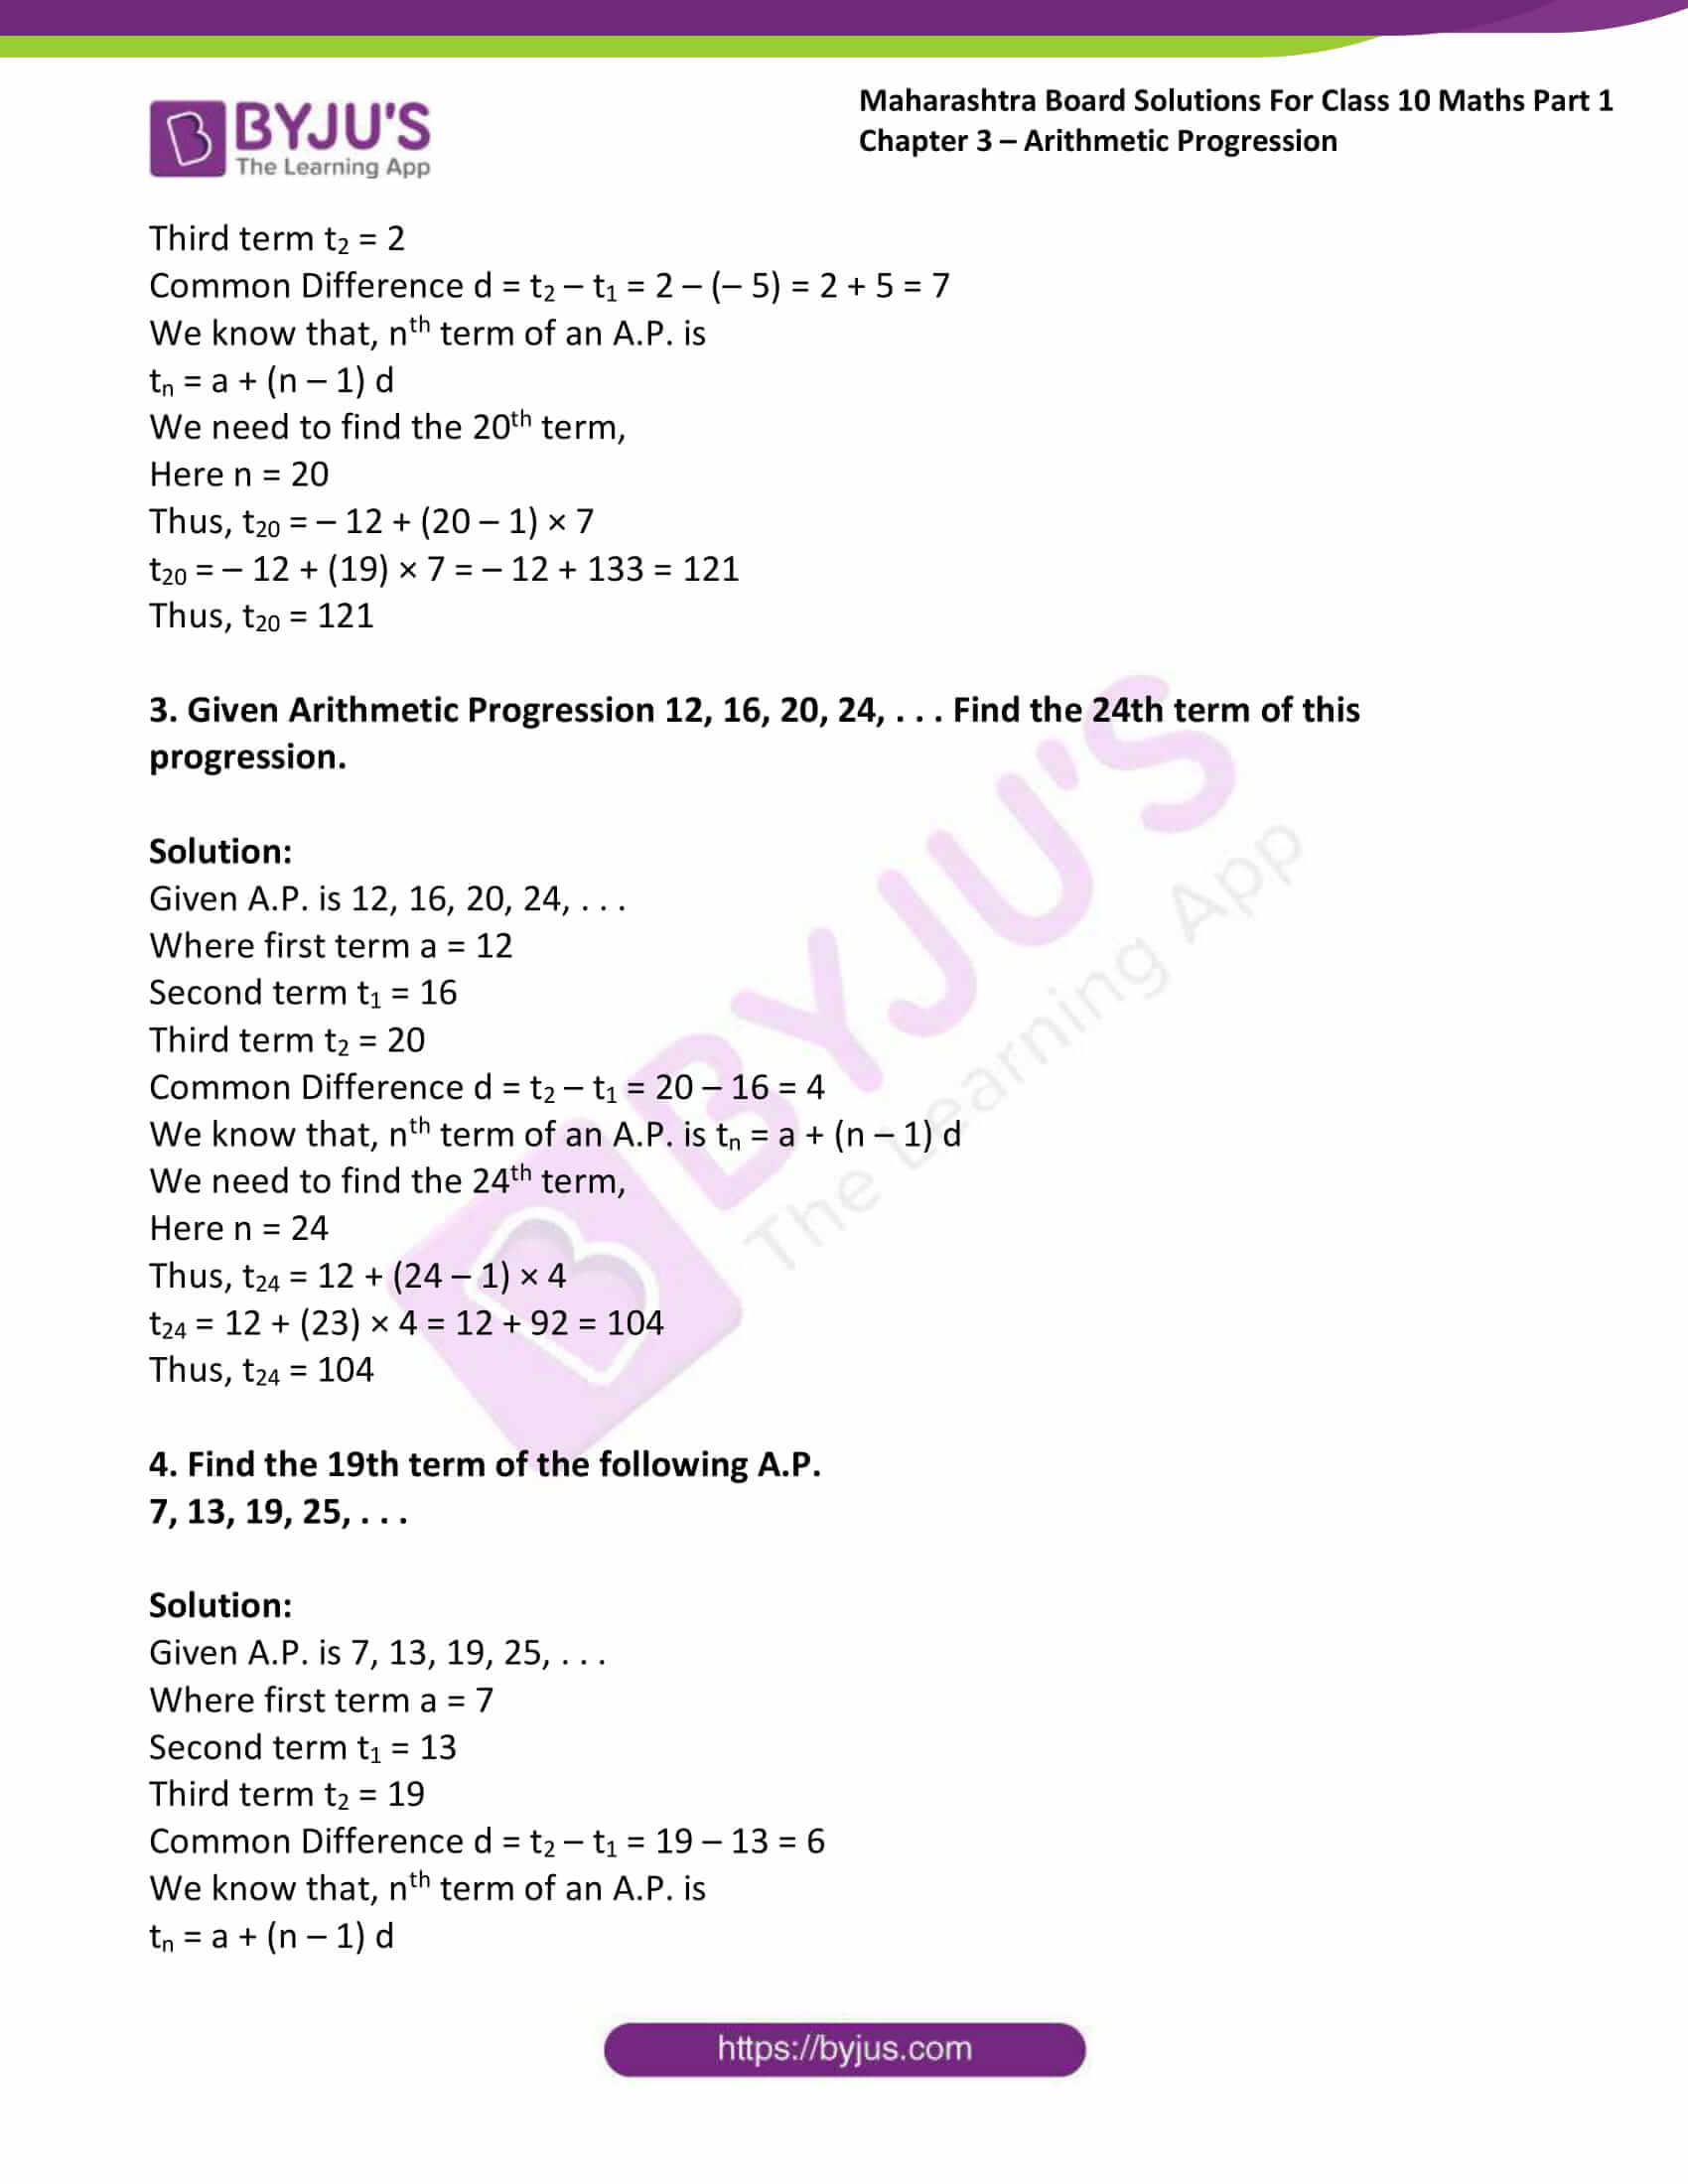 msbshse solutions class 10 maths part 1 chapter 3 10